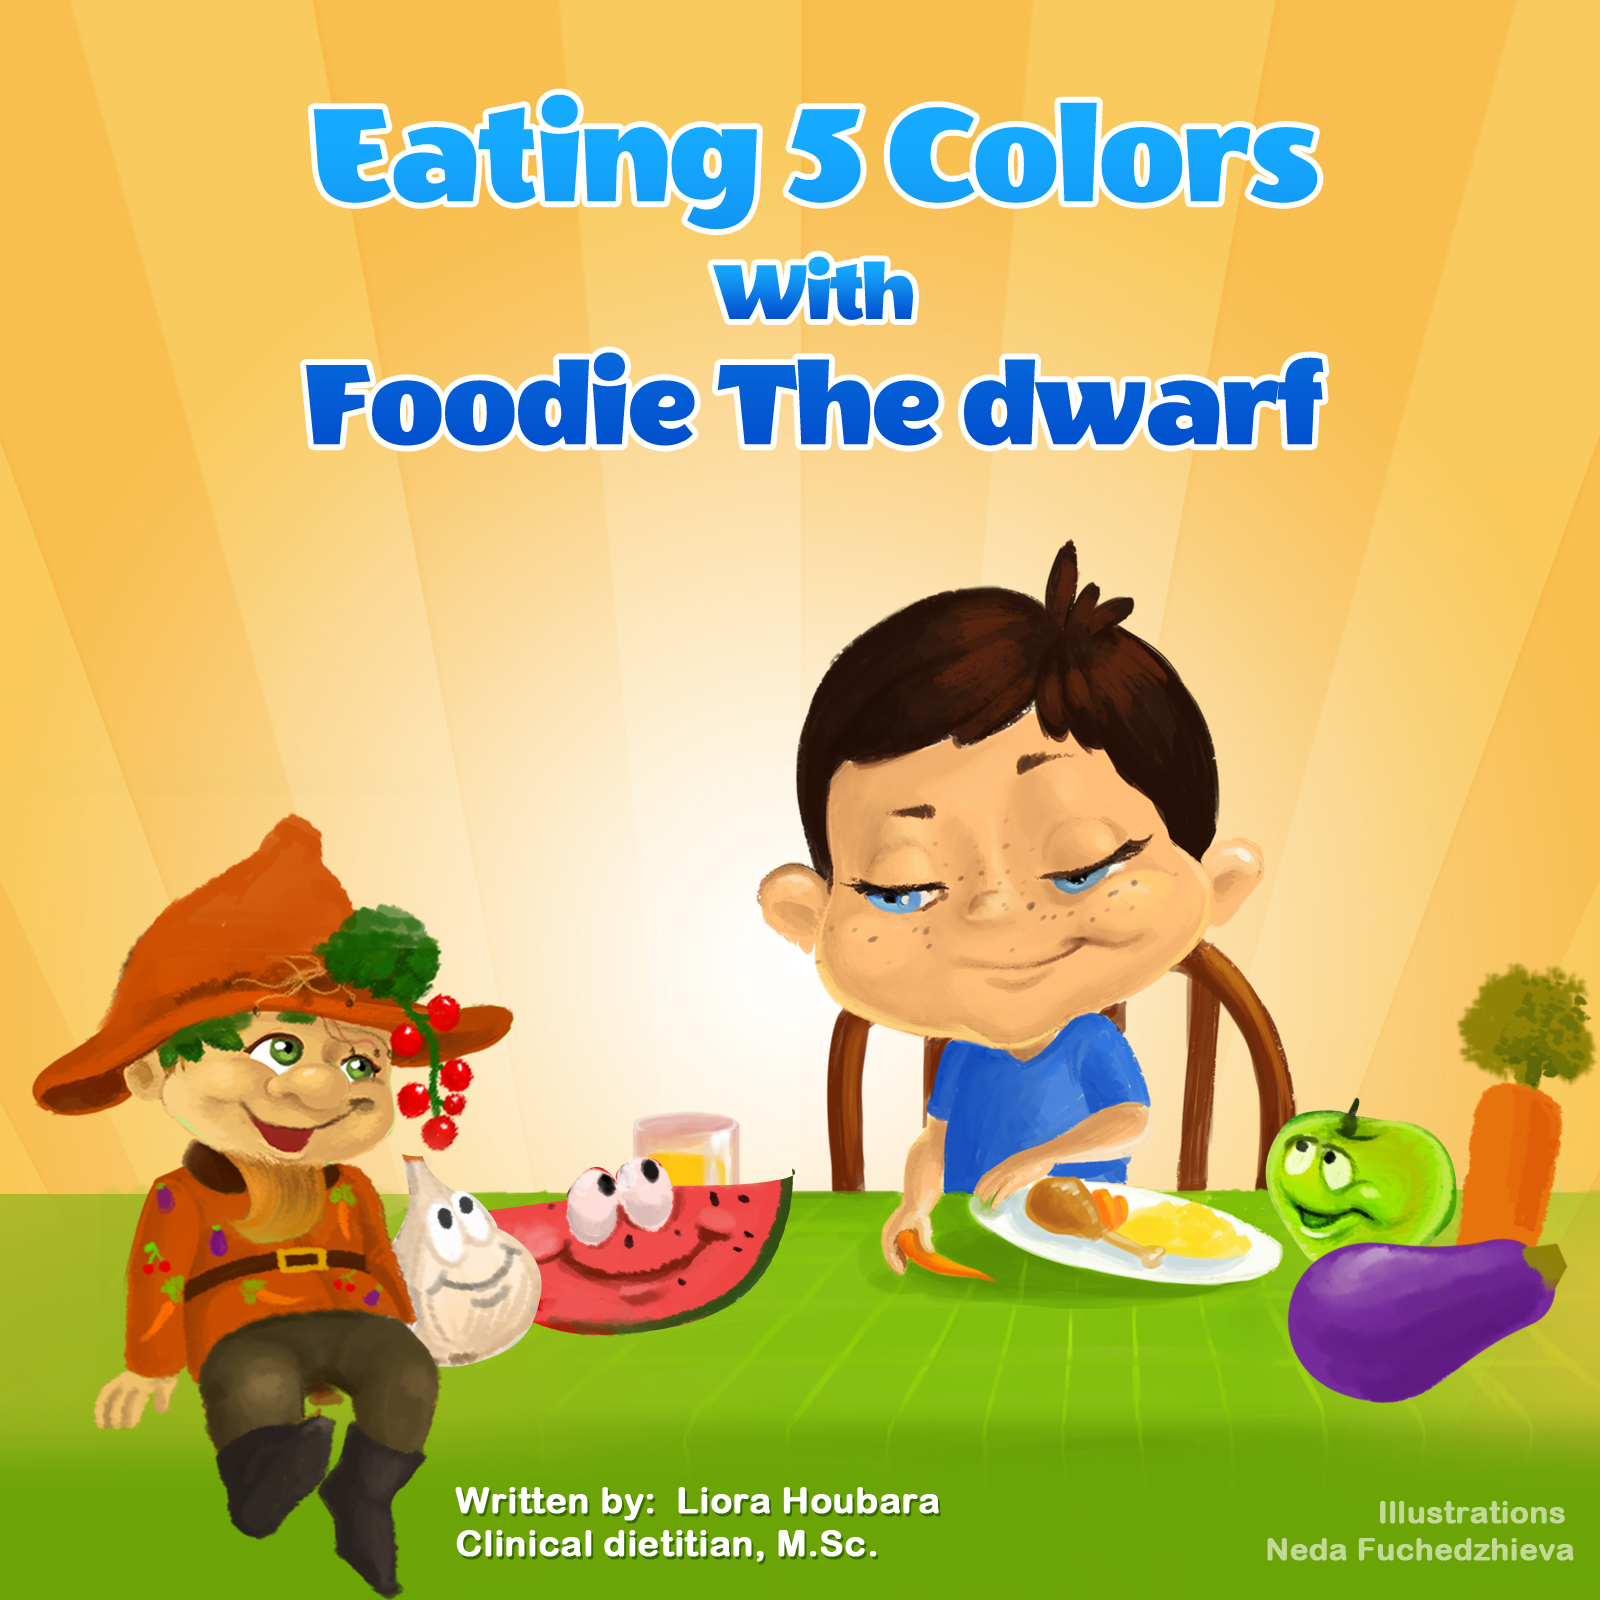 Eating 5 colors with Foodie the Dwar